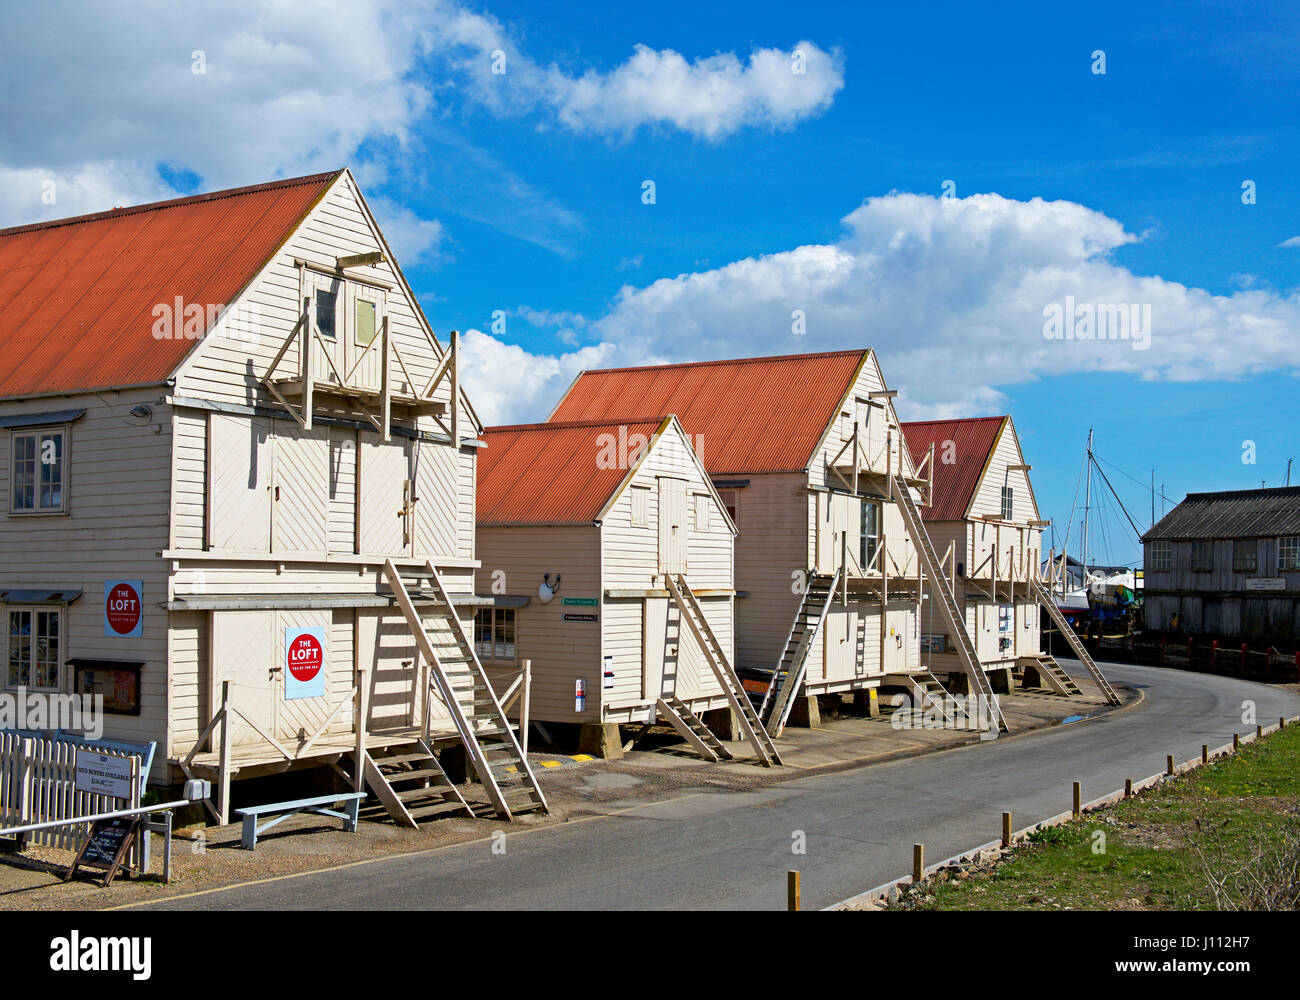 Sail lofts on stilts, Tollesbury, Essex, England UK - Stock Image